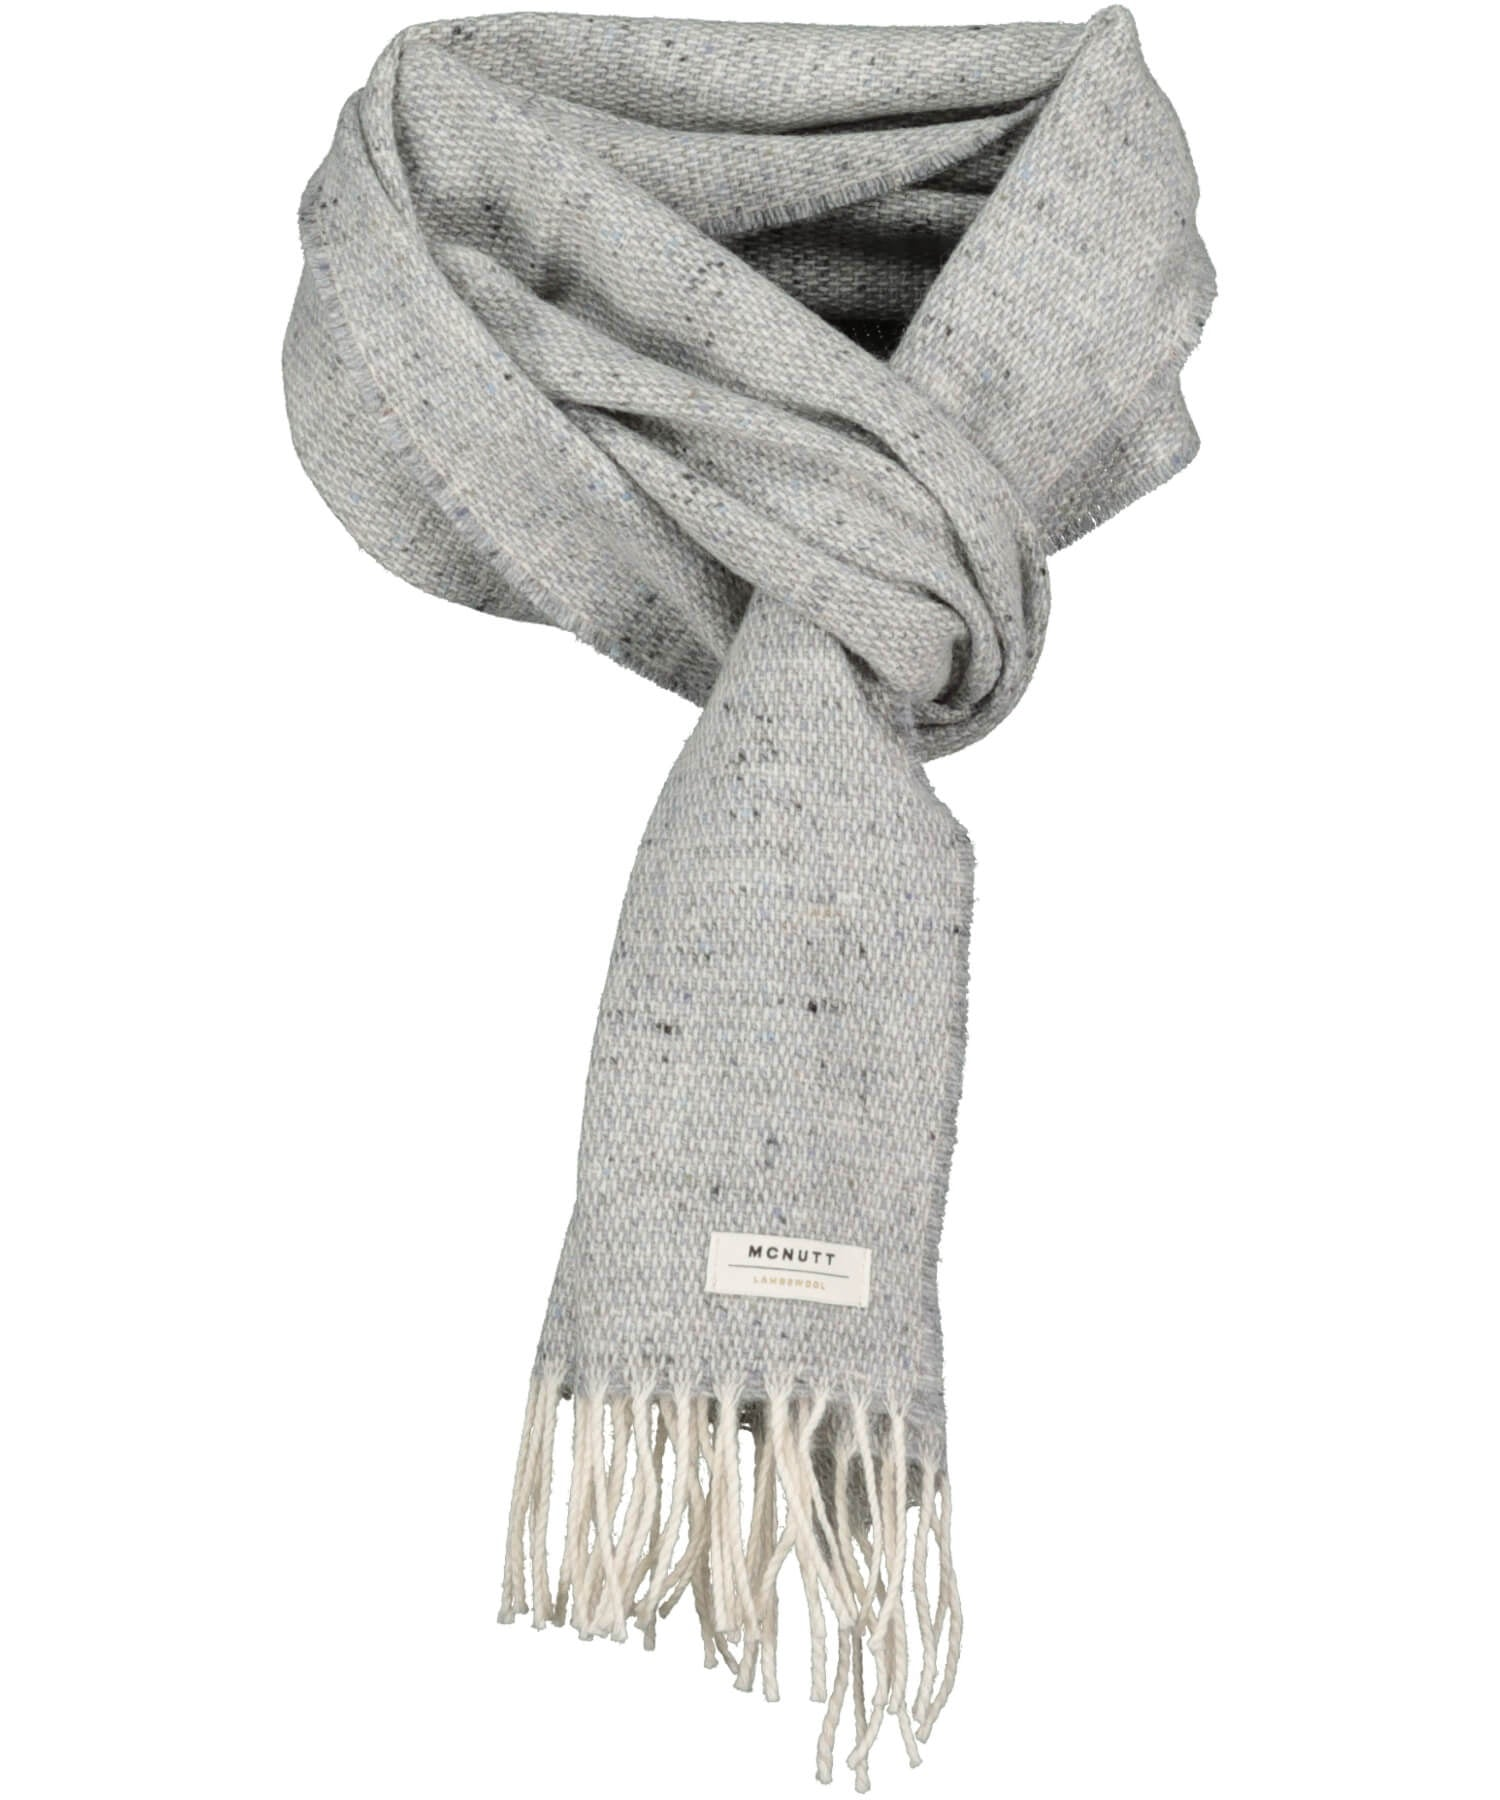 Tweed Scarf - Light Grey - [McNutts] - Unisex Scarves - Irish Gifts